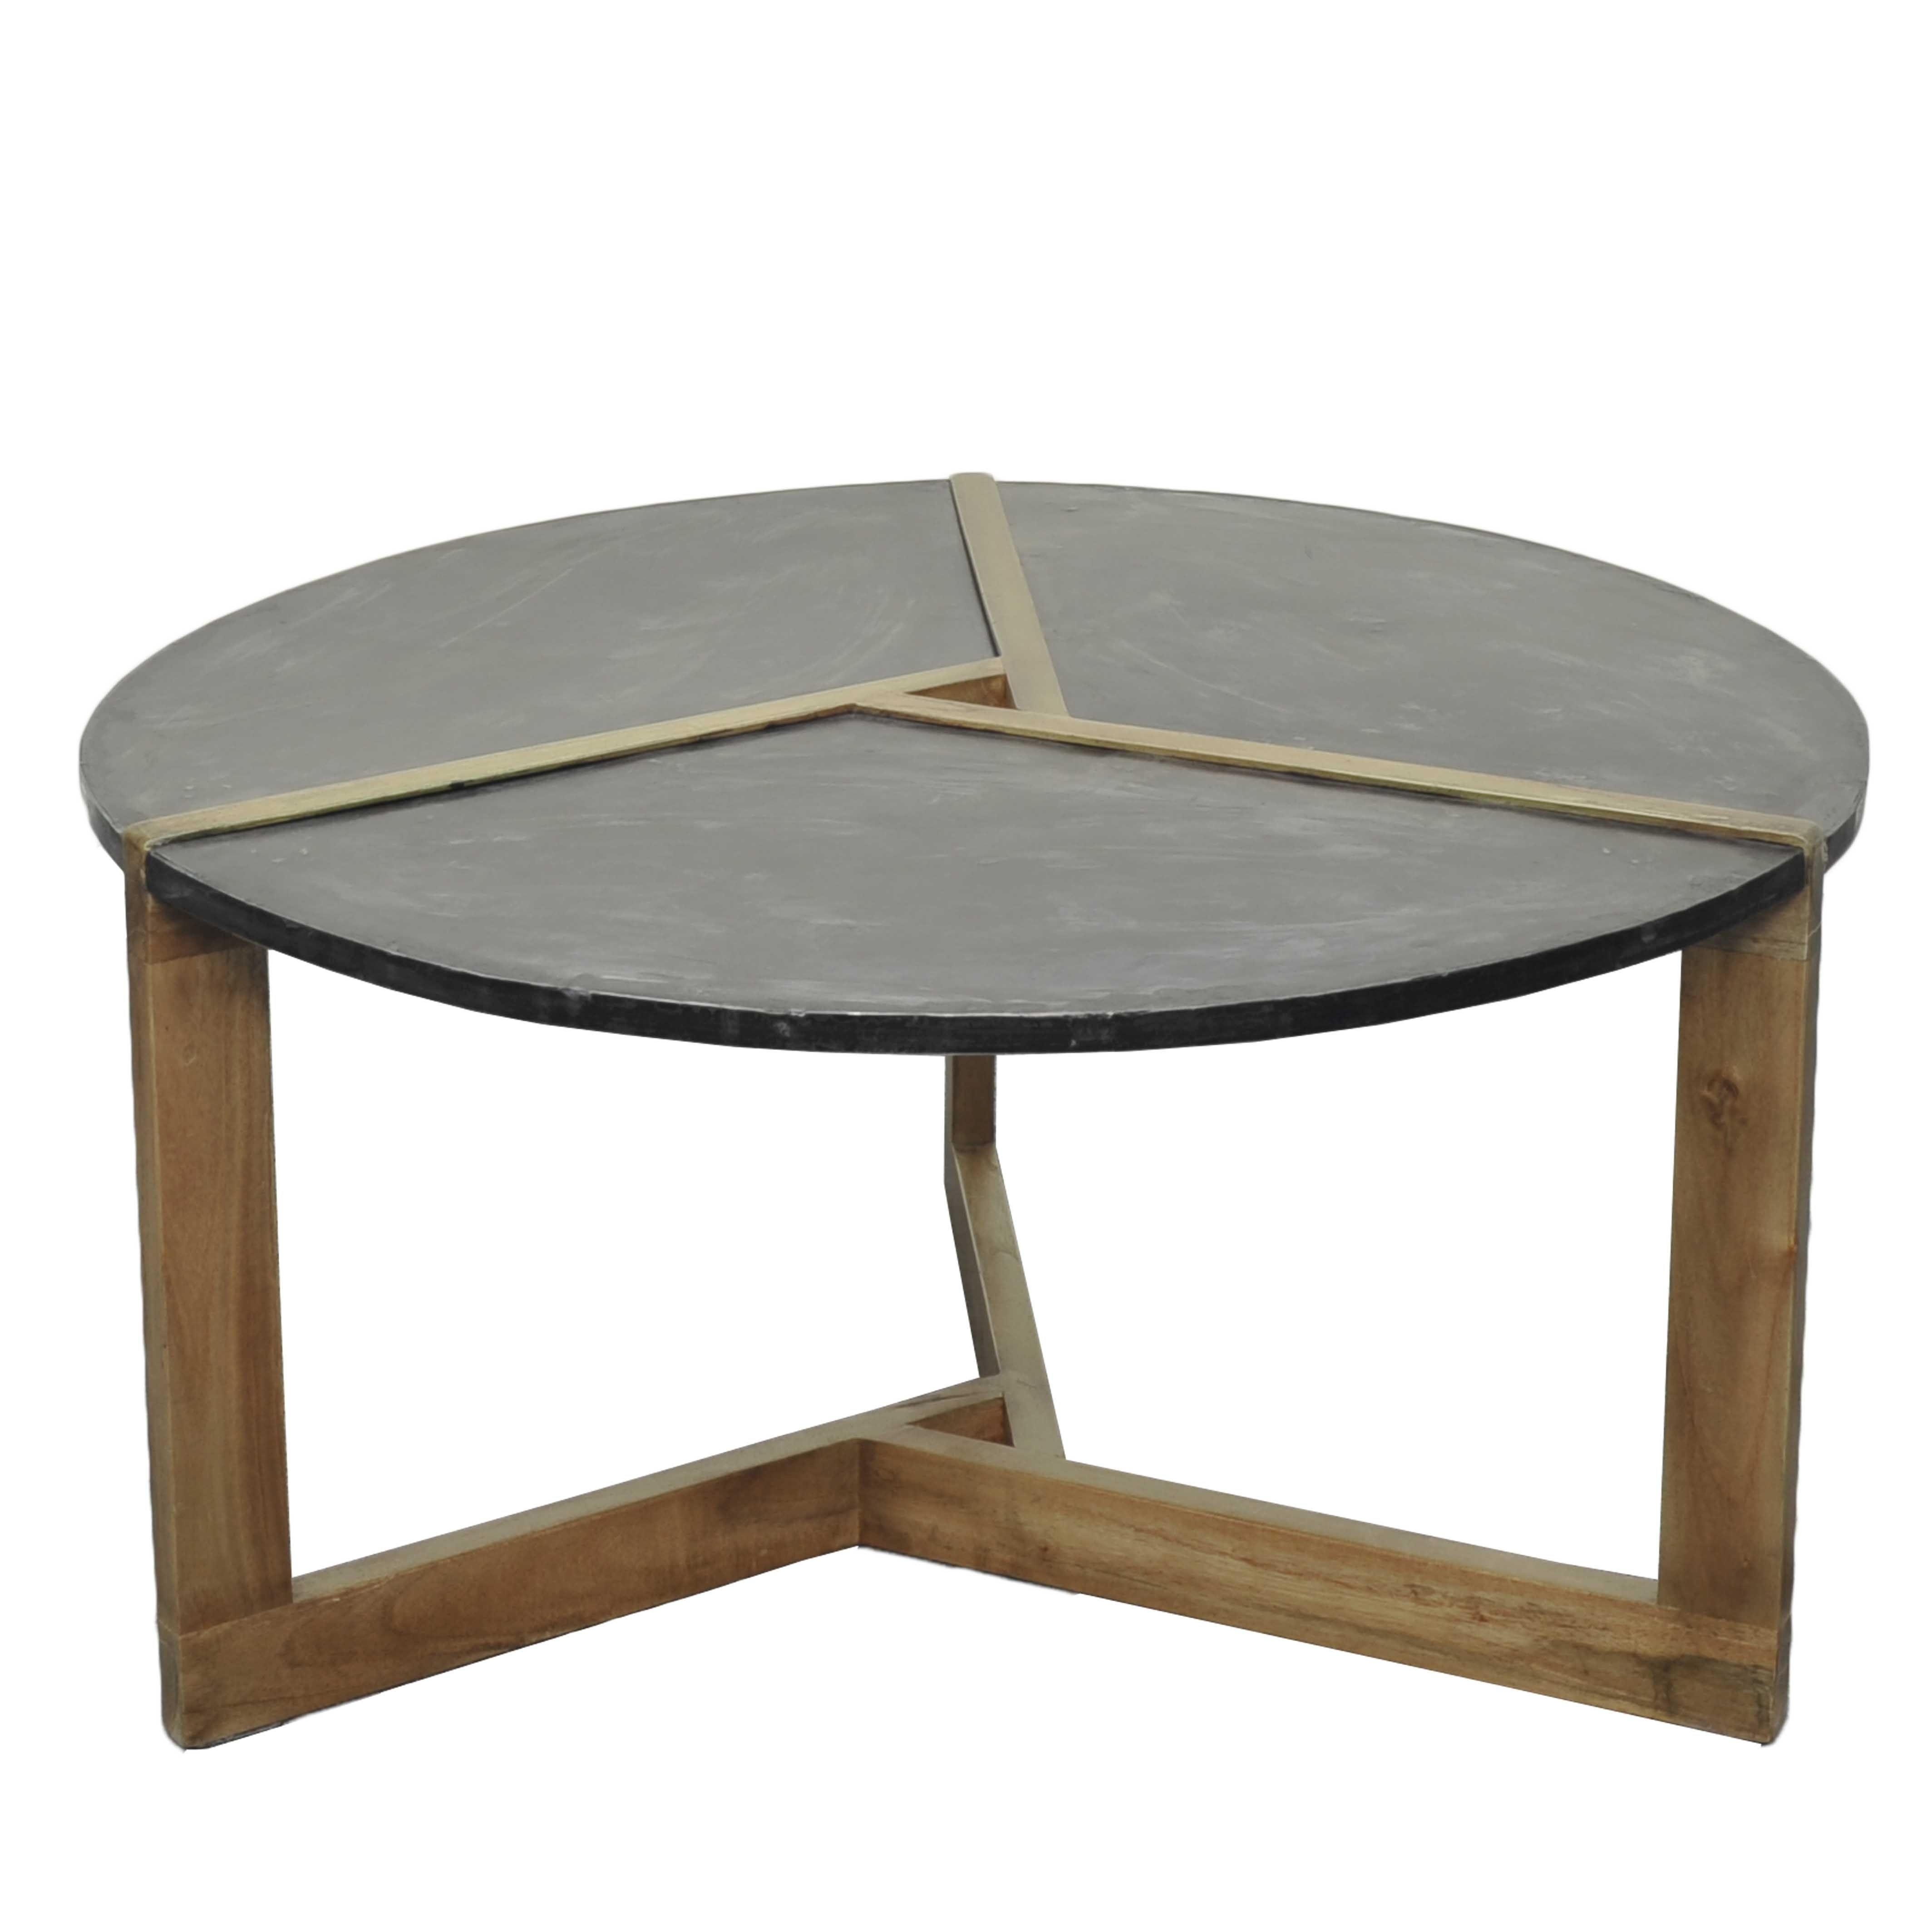 Oslo Metal Plate Coffee Table Natural Gray Base, Rustic Gray/9200004 inside Large Slab Marble Coffee Tables With Antiqued Silver Base (Image 23 of 30)